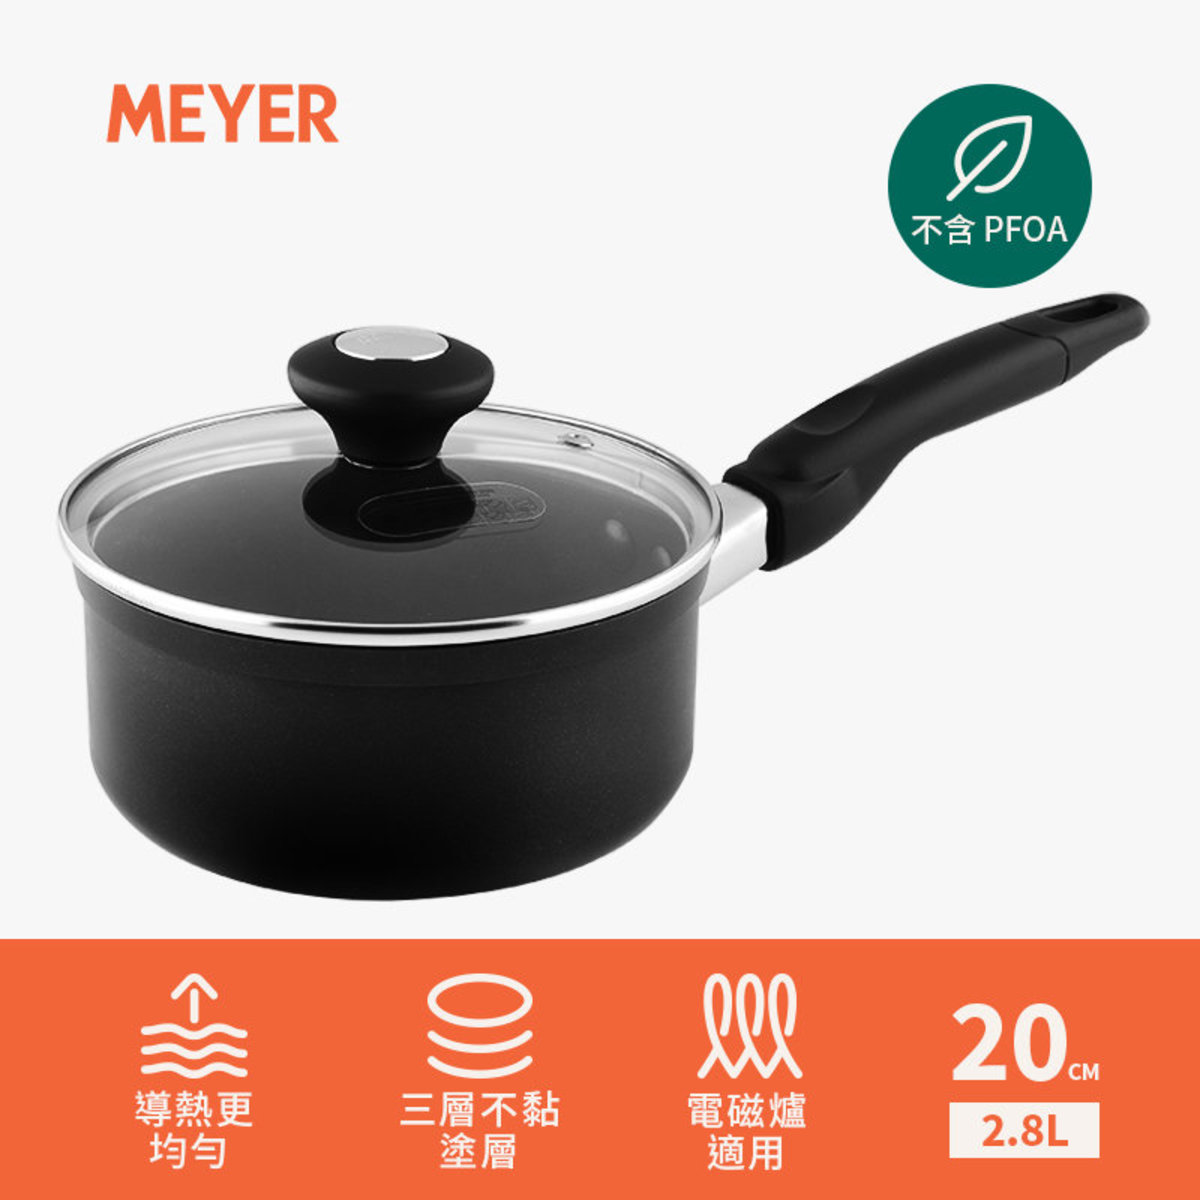 (Induction) 20cm | 2.8L Nonstick Saucepan with Glass Lid - COOK'N LOOK (# 18886 )